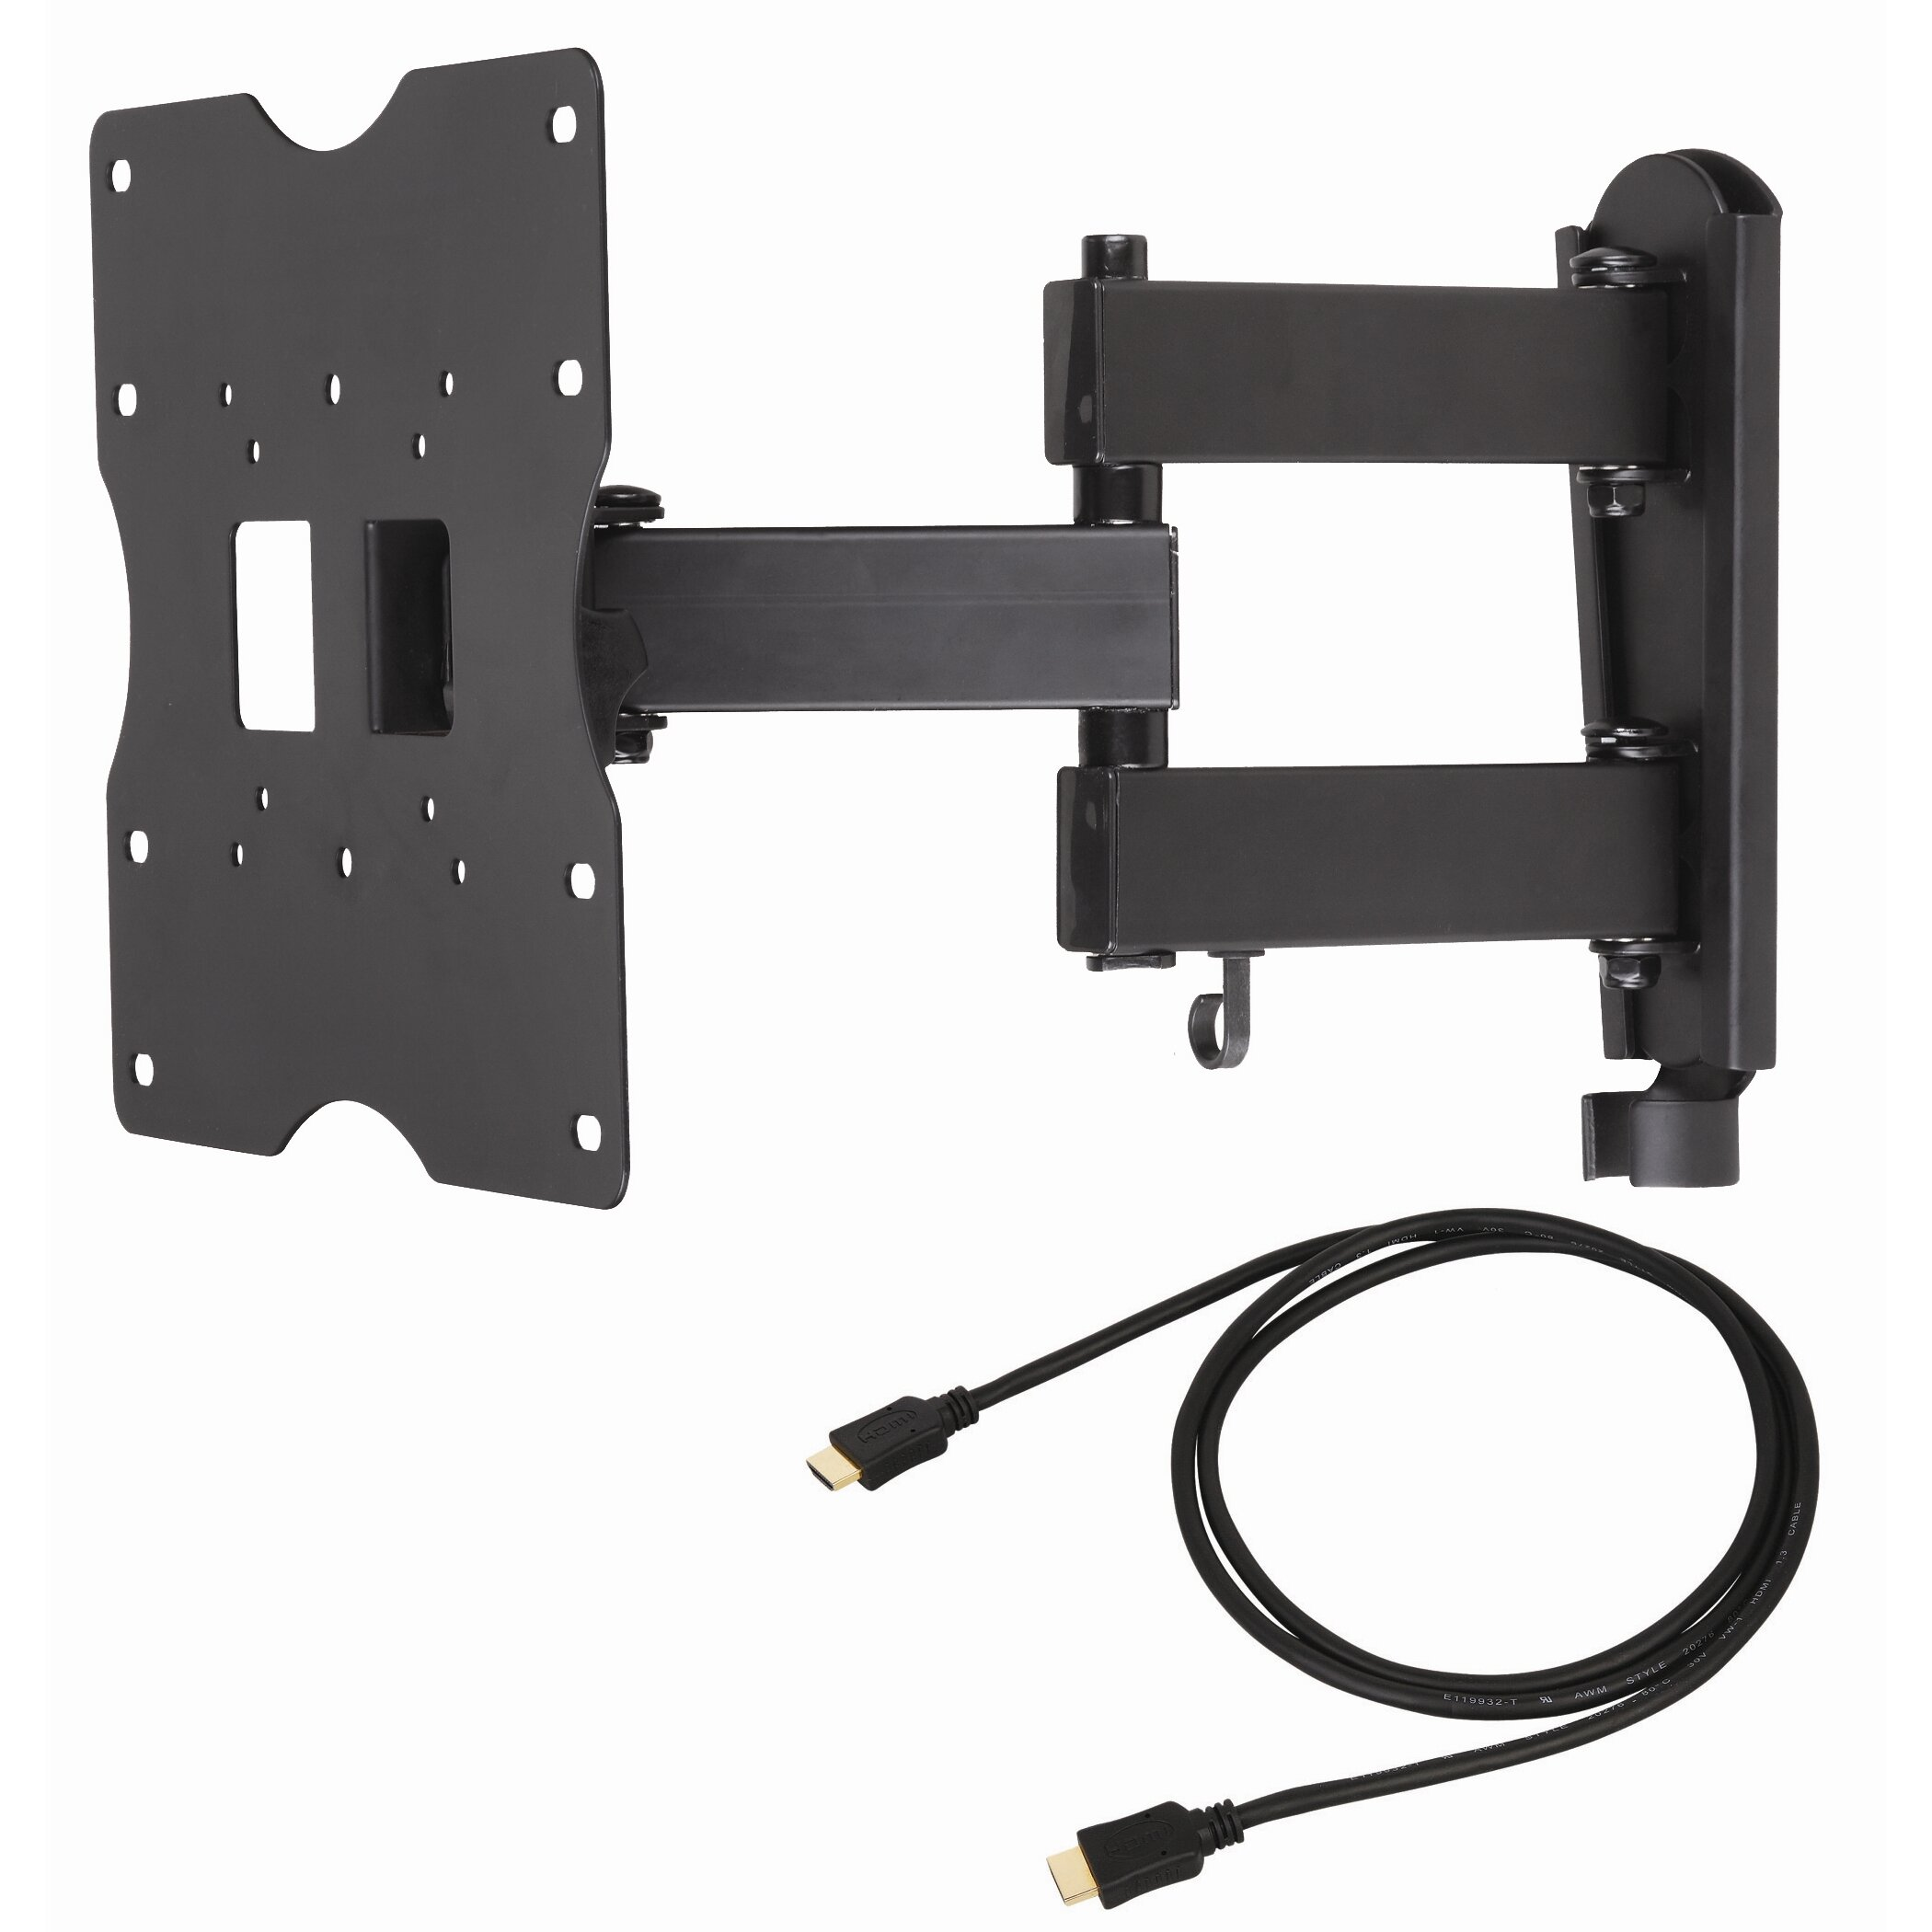 plasma wall mount instructions